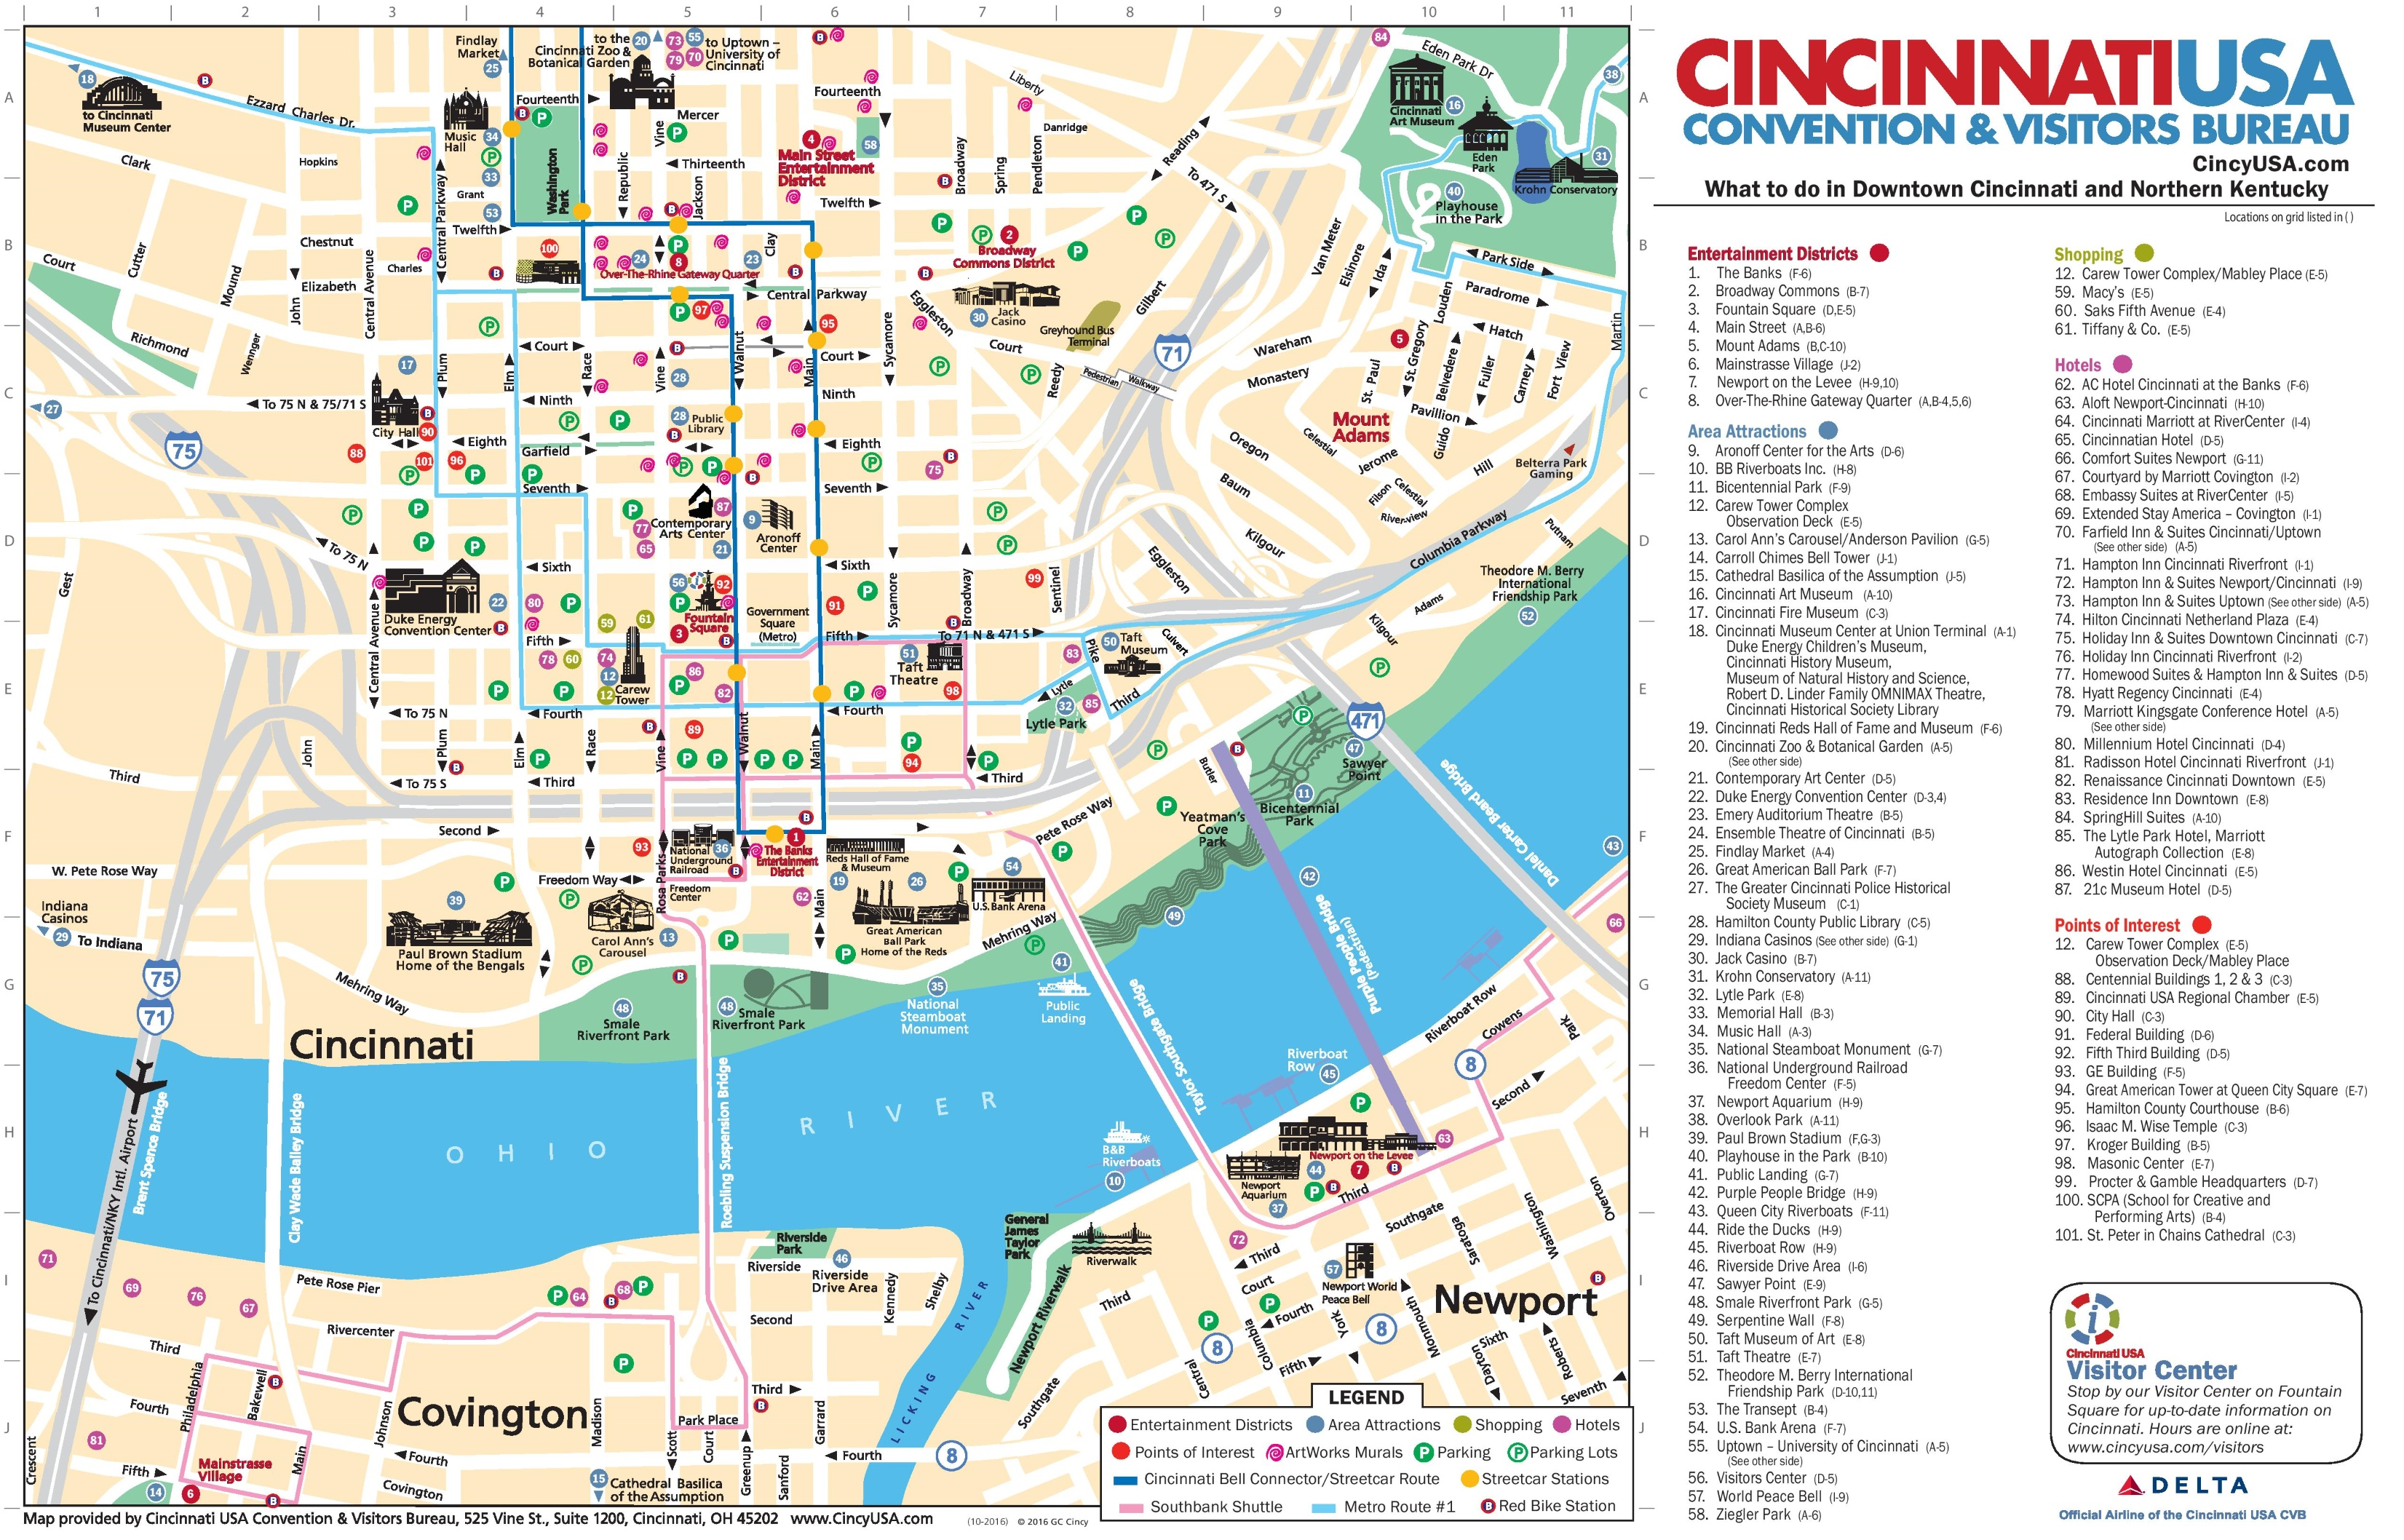 Cincinnati hotels and sightseeings map on cincinnati oh suburbs, cincinnati oh on the map, cincinnati area road map, cincinnati airport map, cincinnati on us map, greater cincinnati map, dayton ohio united states map, dayton cincinnati map, cincinnati ohio, cincinnati outline map, luxembourg luxembourg map, cincinnati usa man, cincinnati casino map, evansville tx map, cincinnati county, cincinnati homicide map, cincinnati transportation, cincinnati bridges map, cincinnati zip codes list, cincinnati city streets,